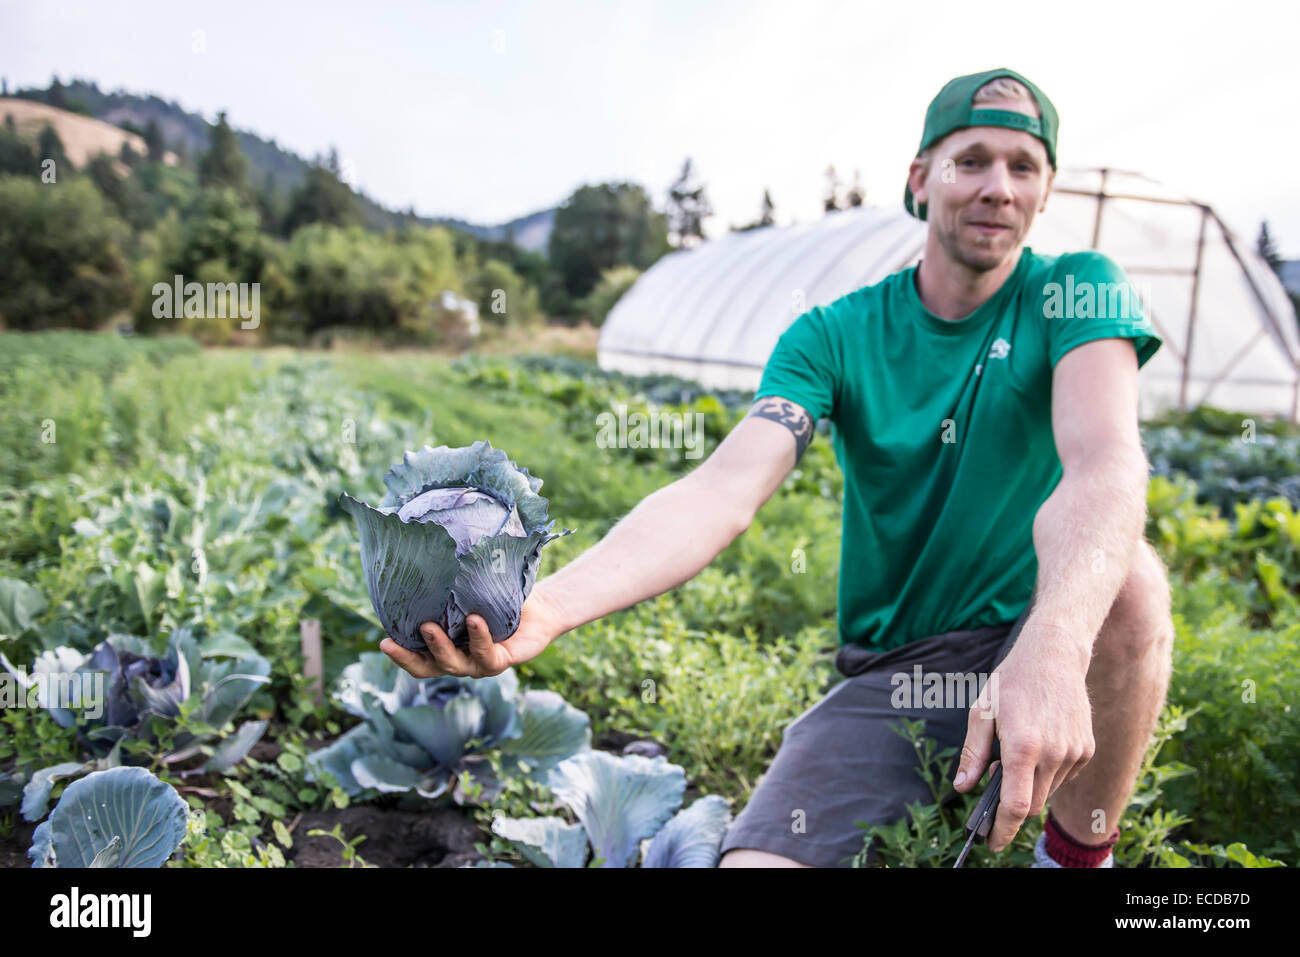 Havesting cabbage on an organic farm. - Stock Image